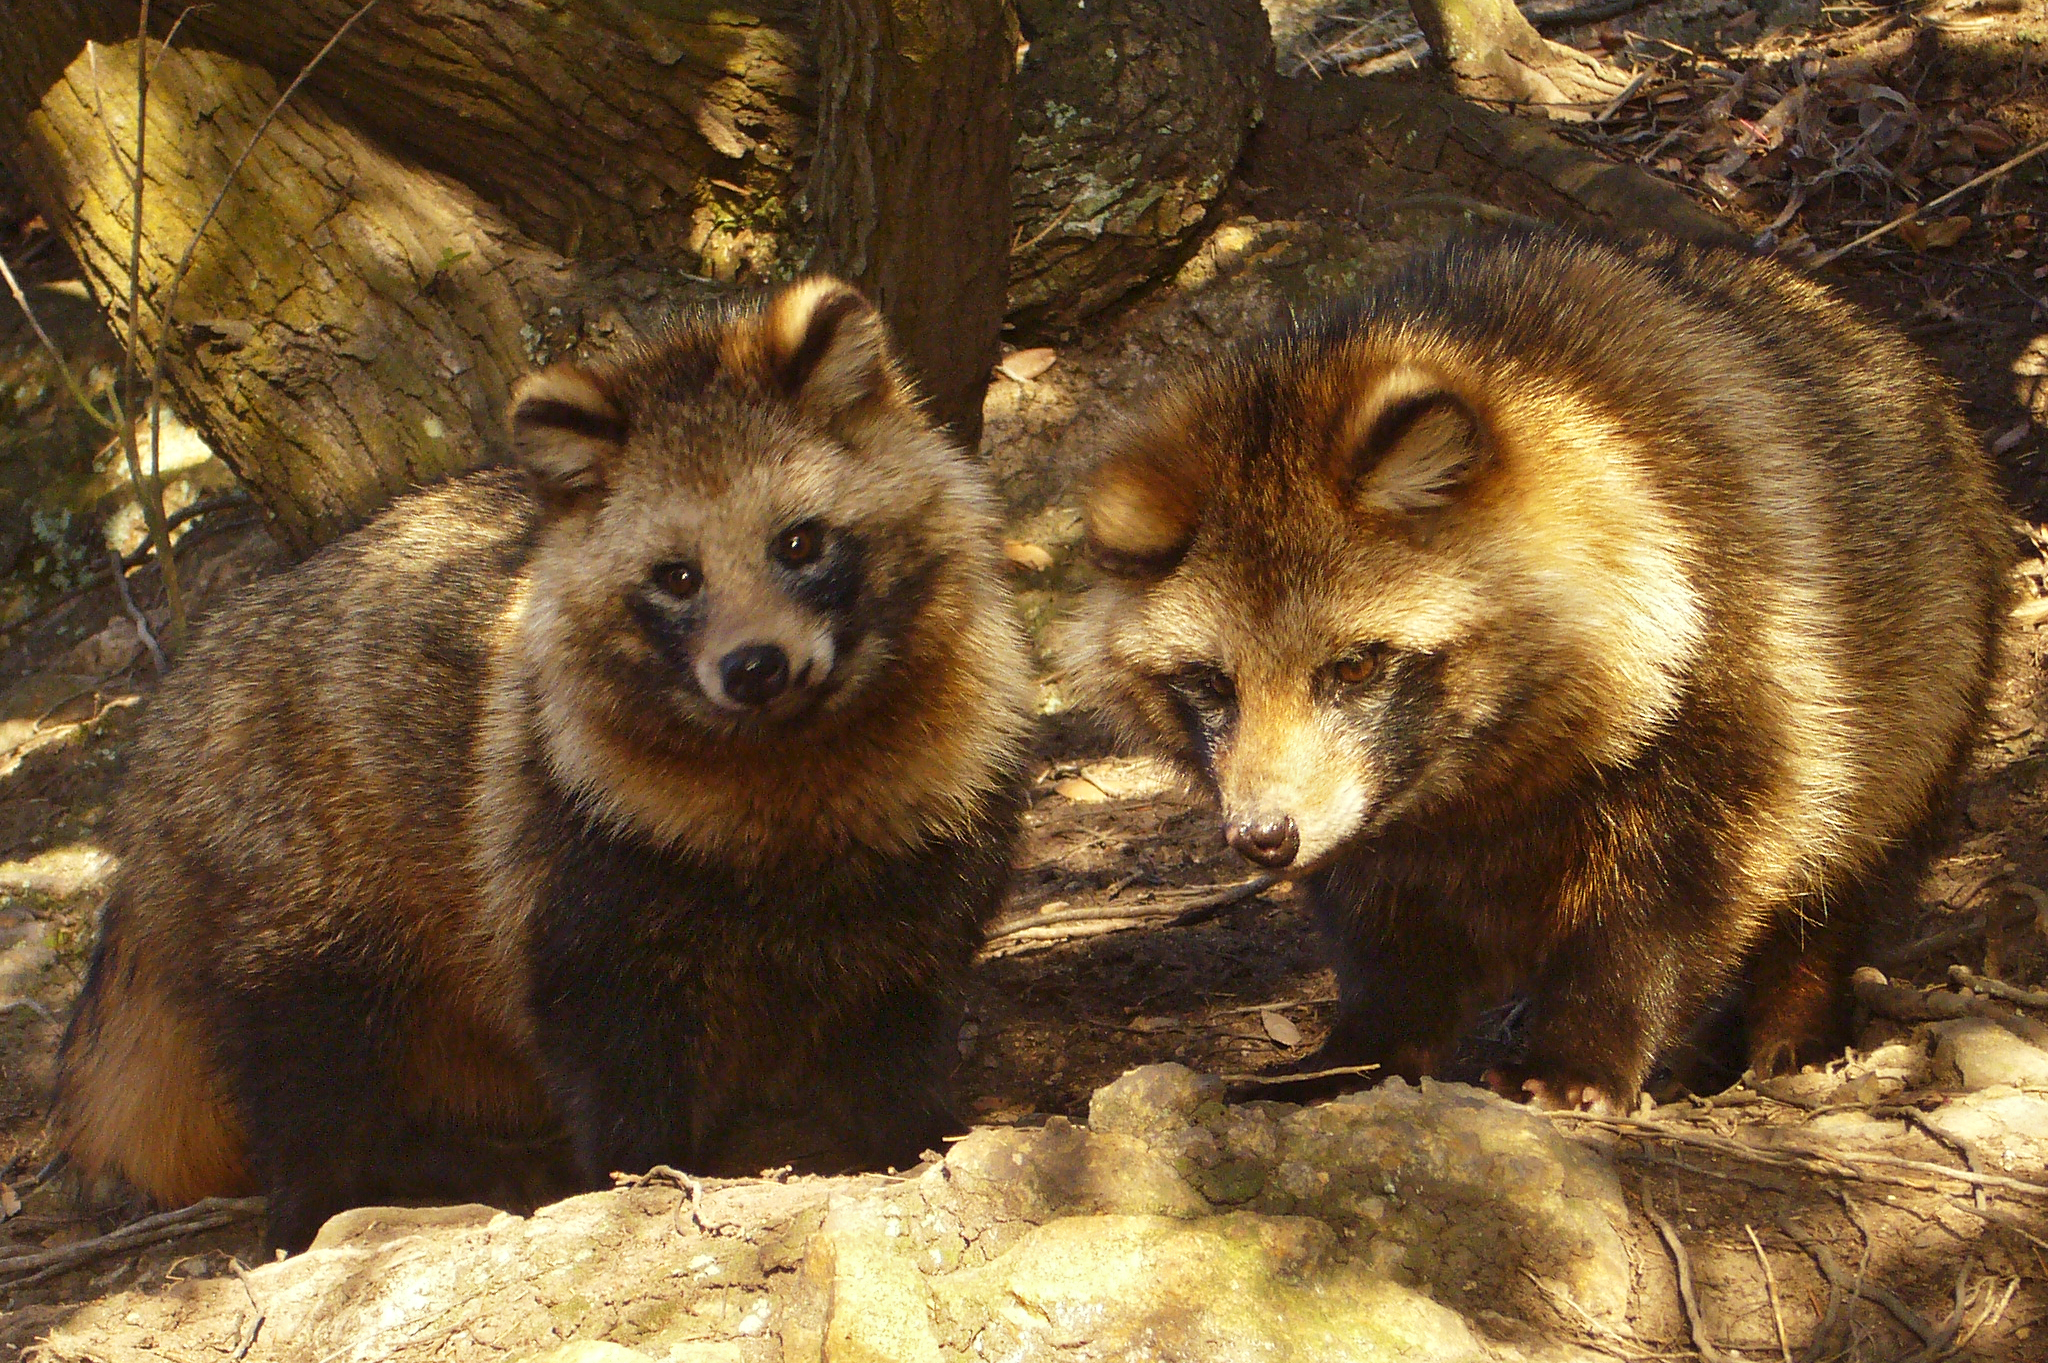 File:TANUKI01 960.jpg - Wikipedia, the free encyclopedia